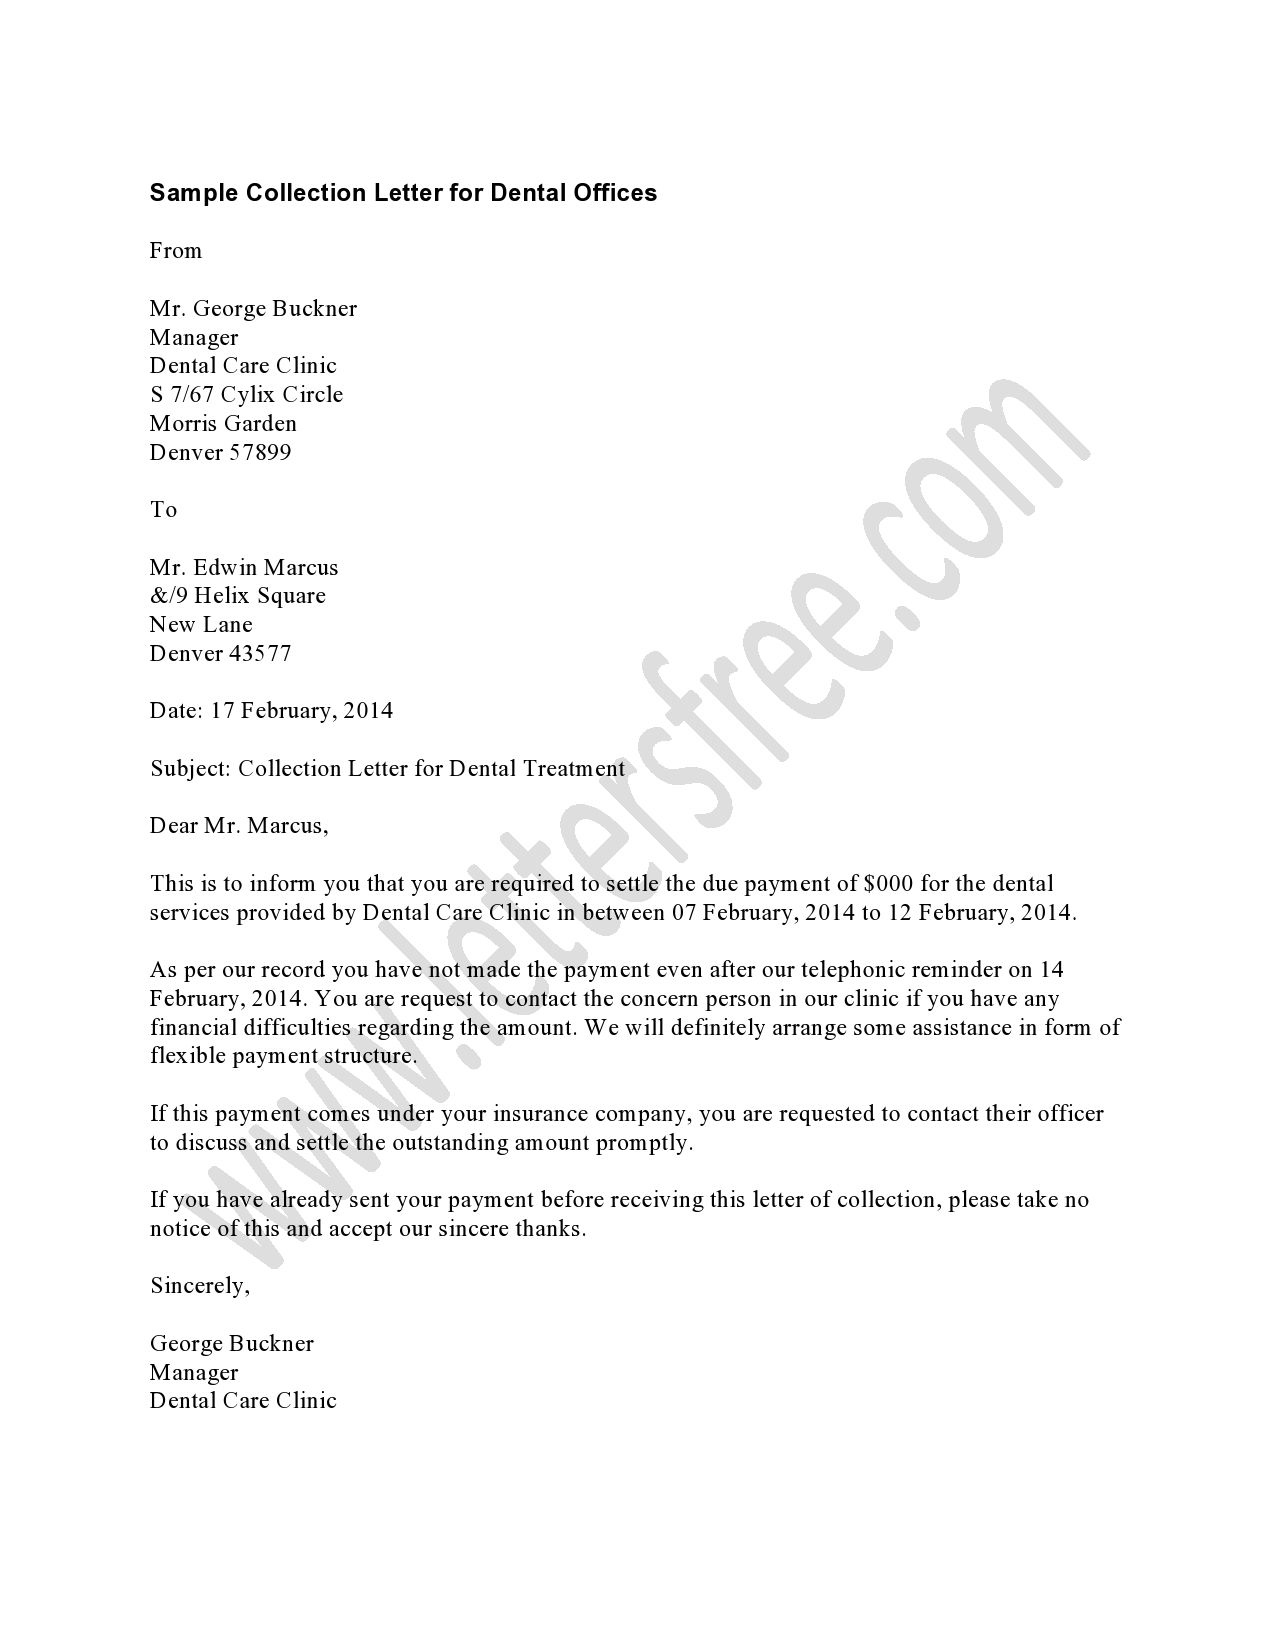 Dental Recall Letter Template - the Dental Collection Letter Should Be Used as A First Late Notice